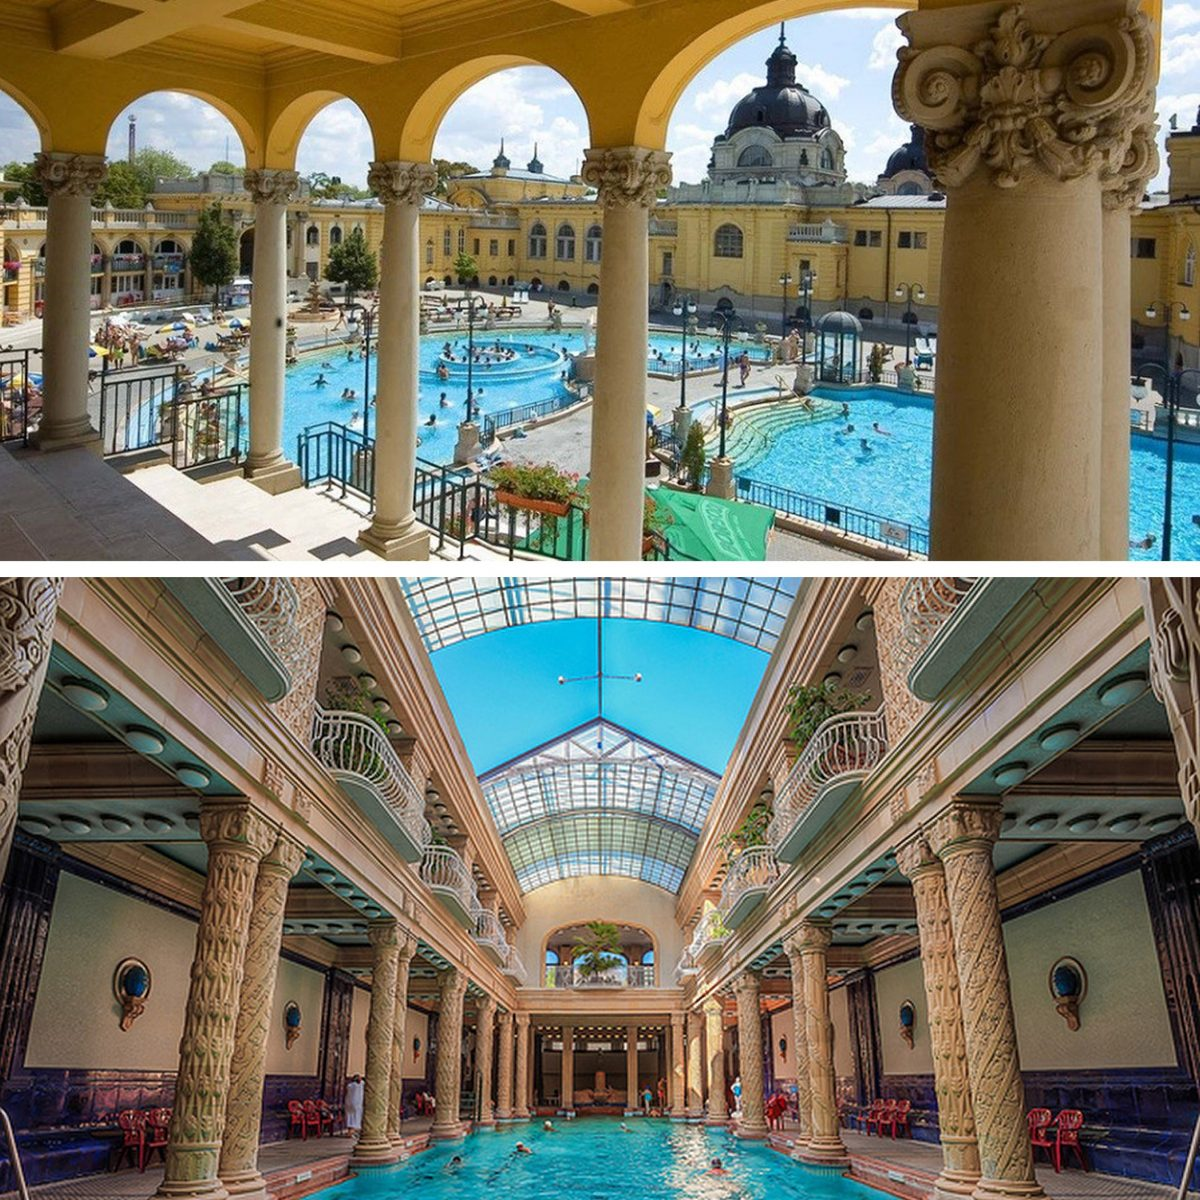 Thermal Baths of Budapest